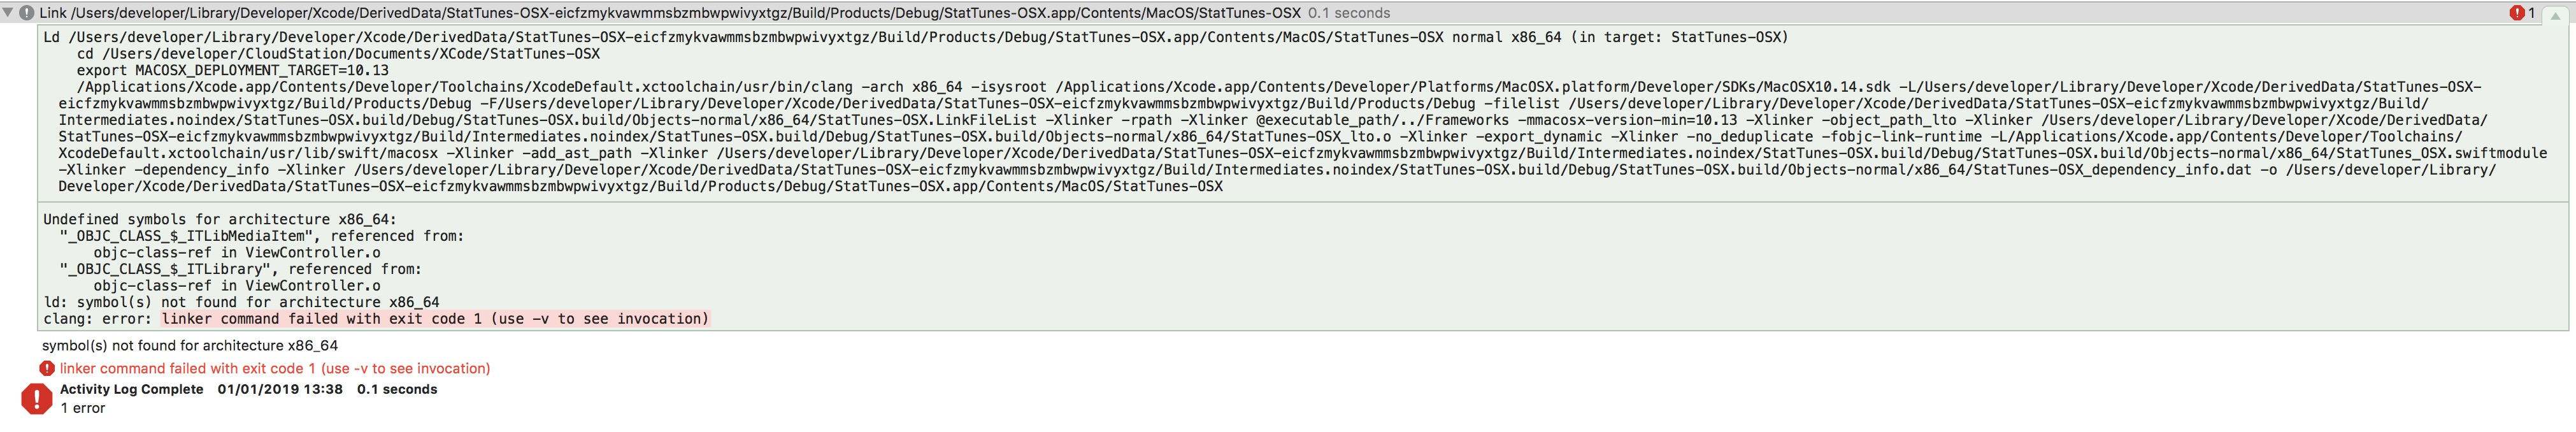 Command iTunes (or other operations) from… - Apple Community